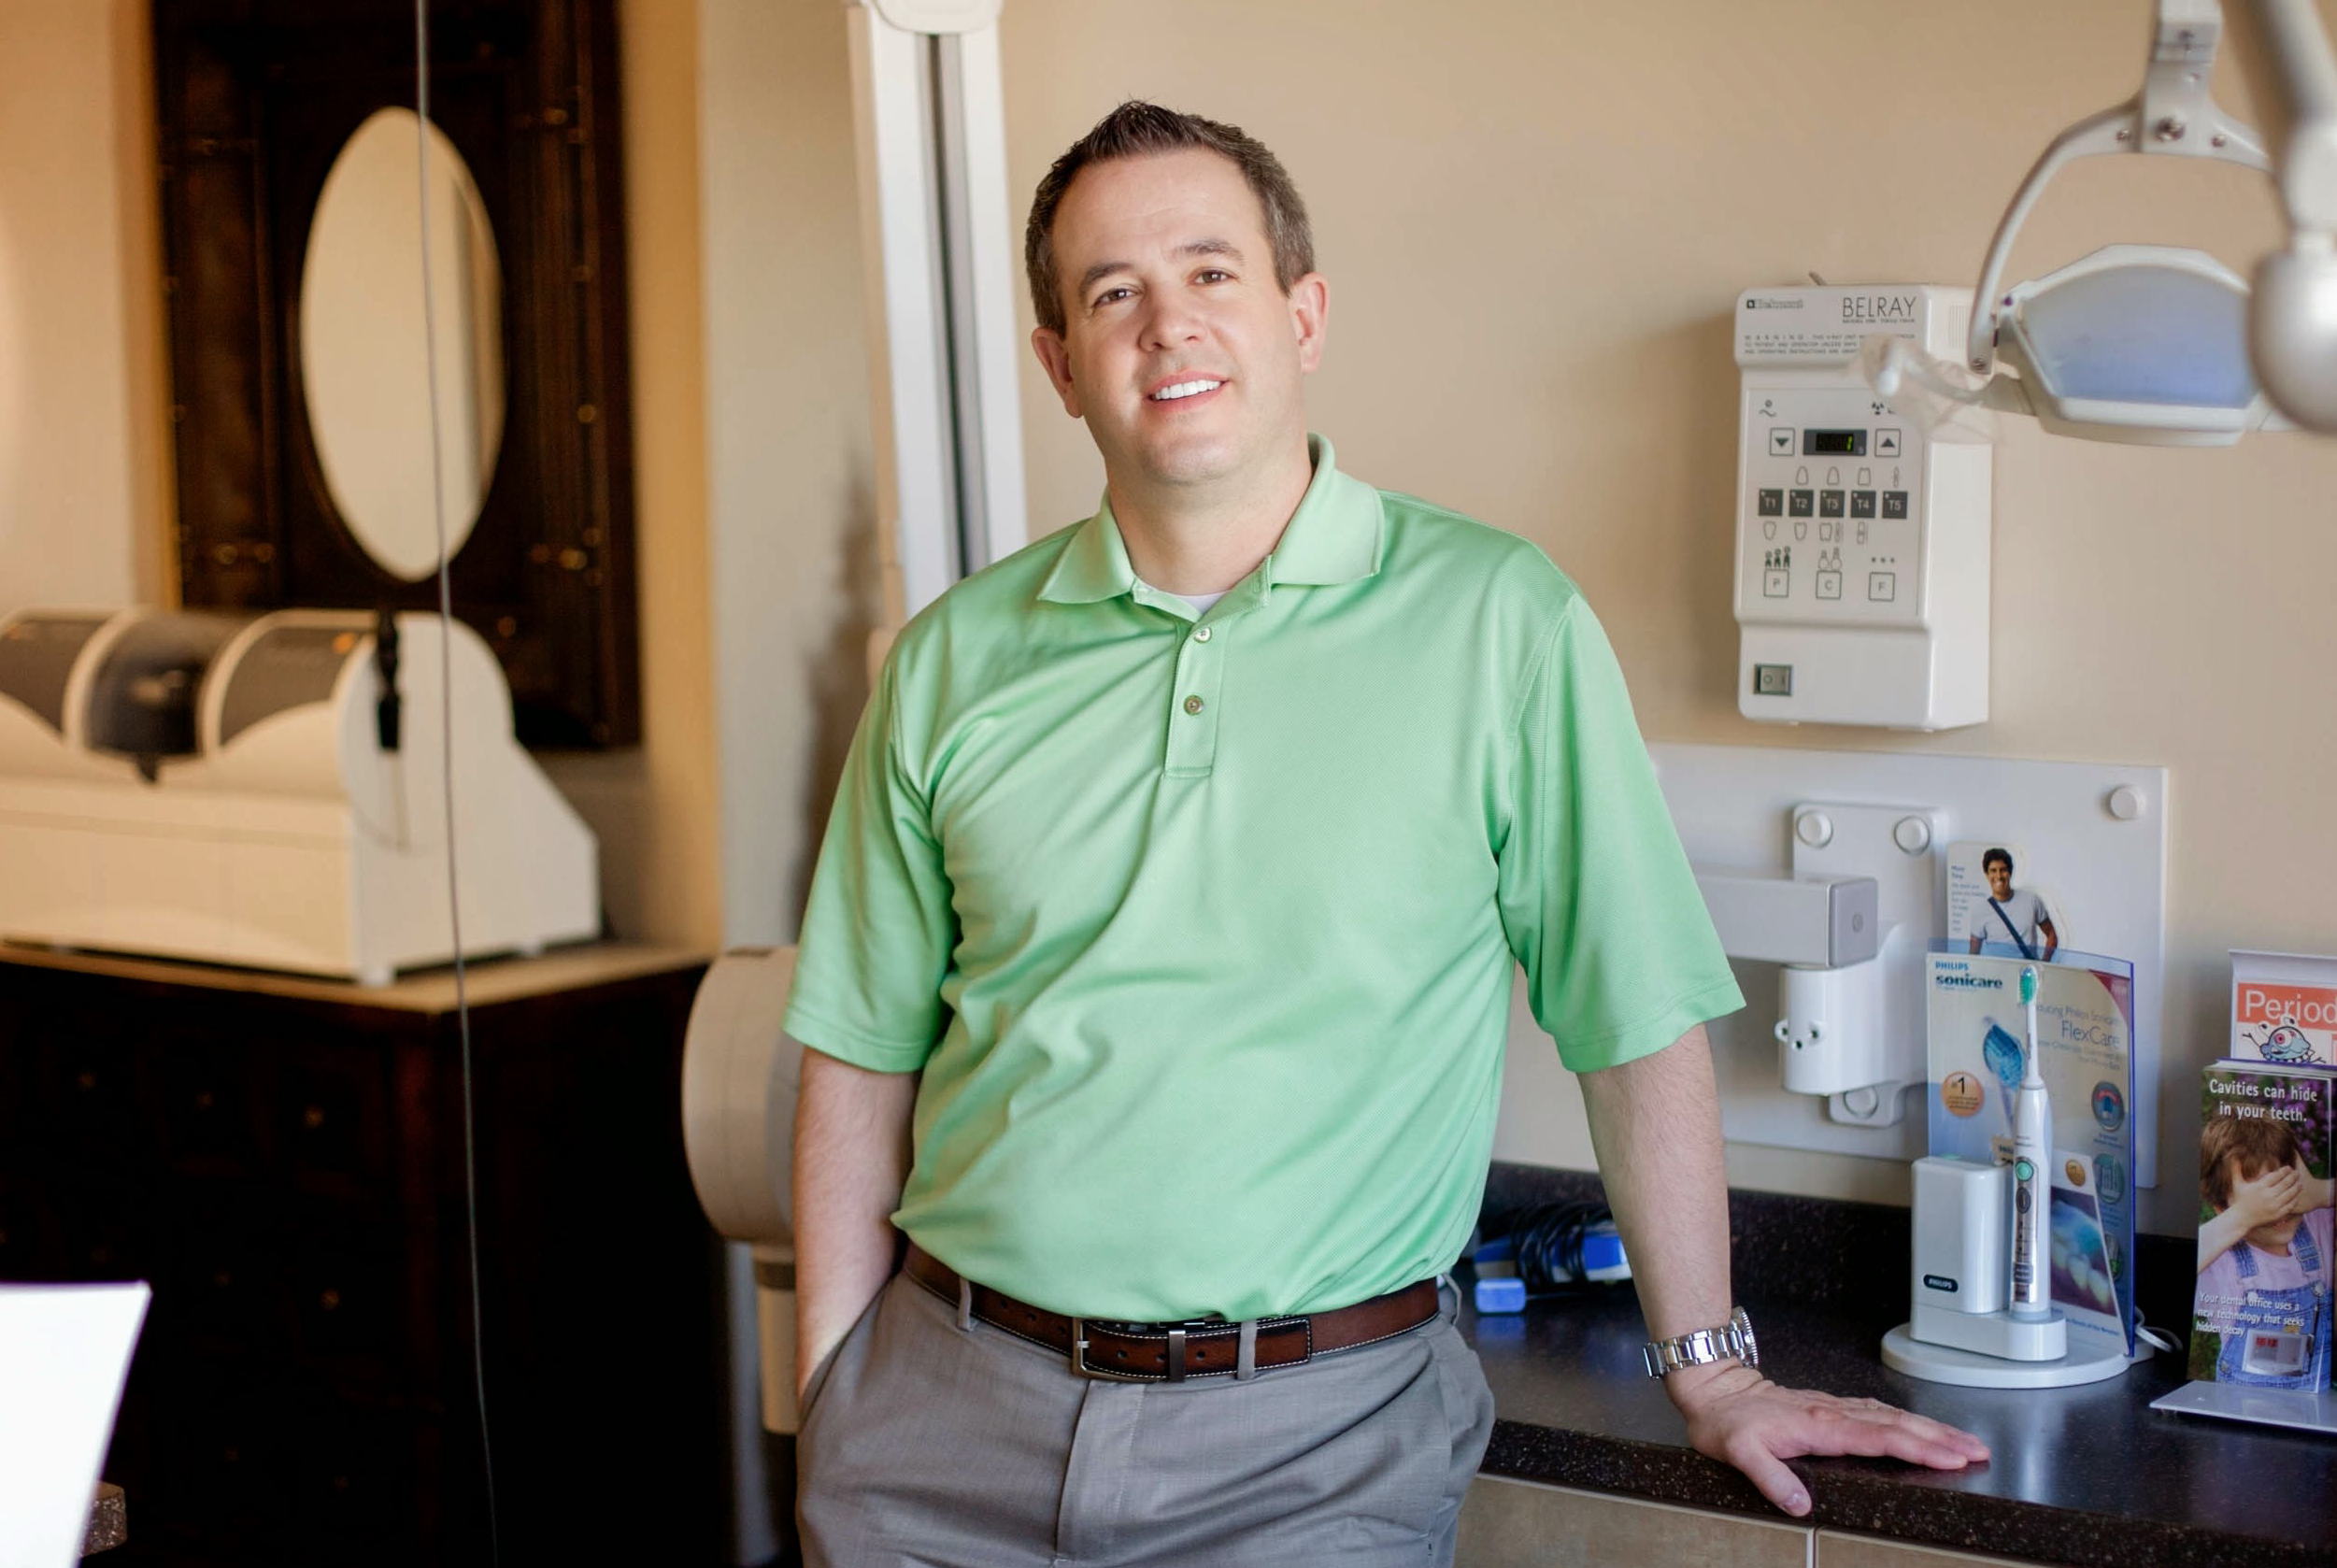 dentist standing in front of technology in office